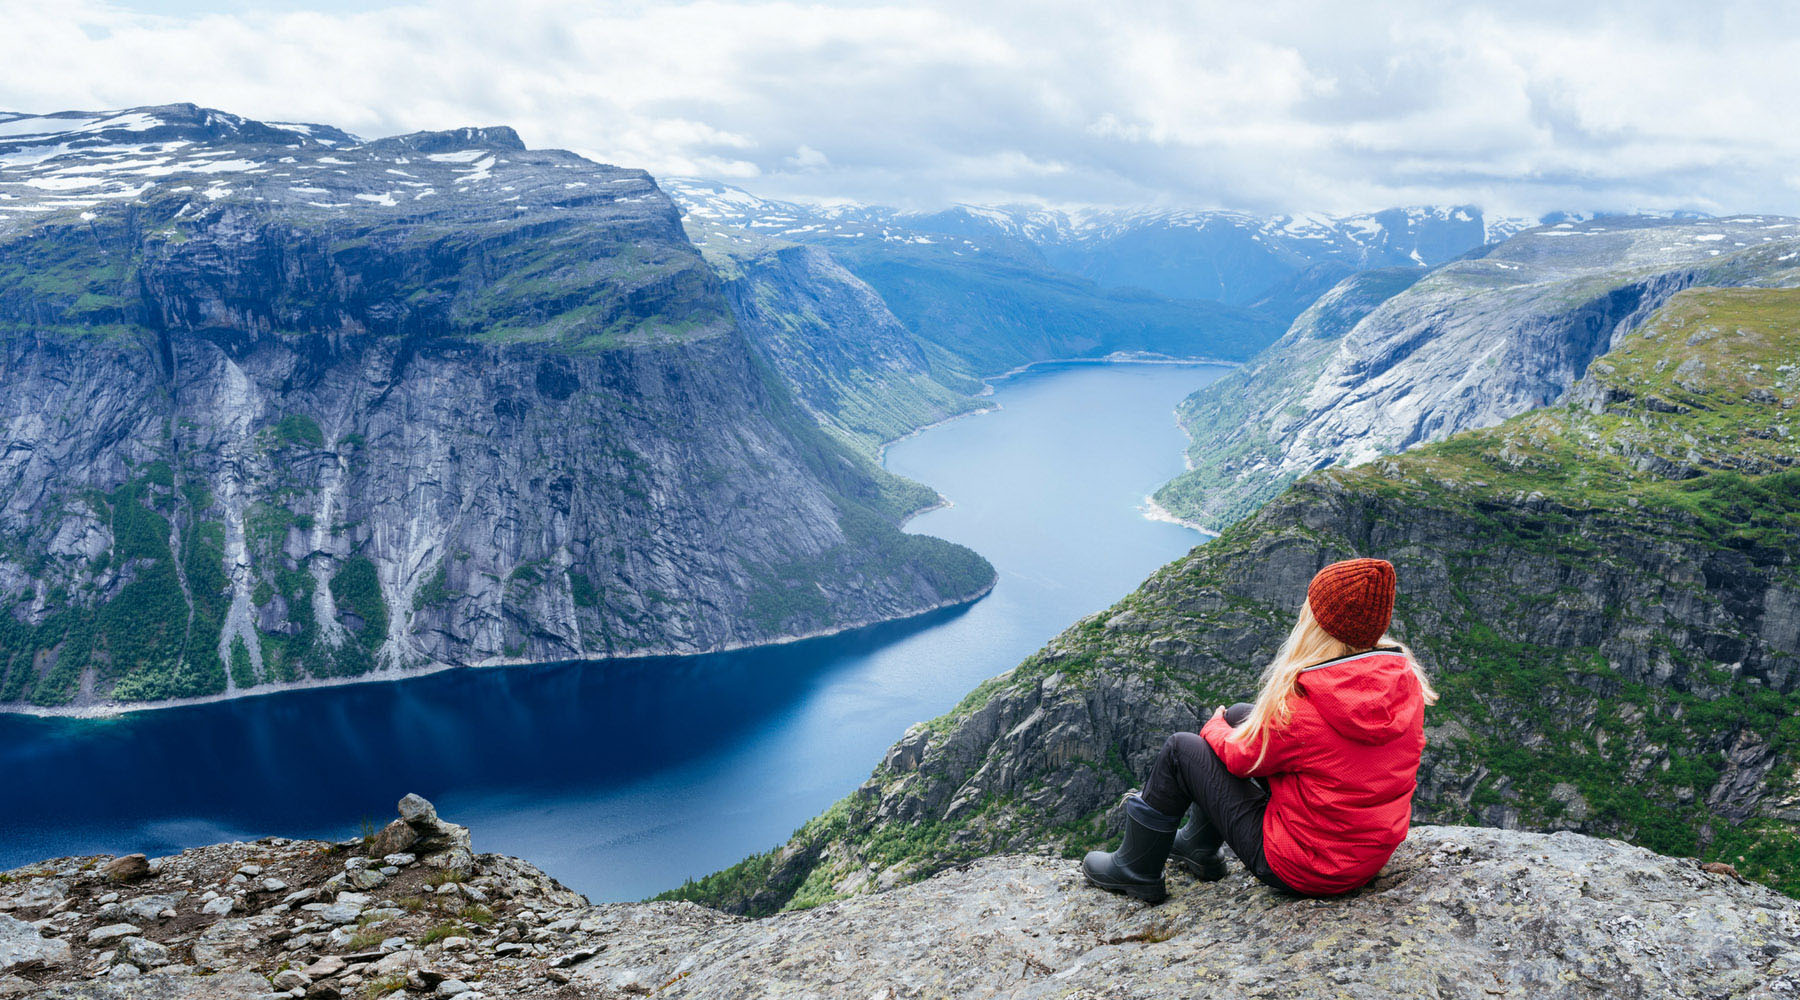 A woman in a red jacket sits on a mountaintop overlooking the fjords in Norway.